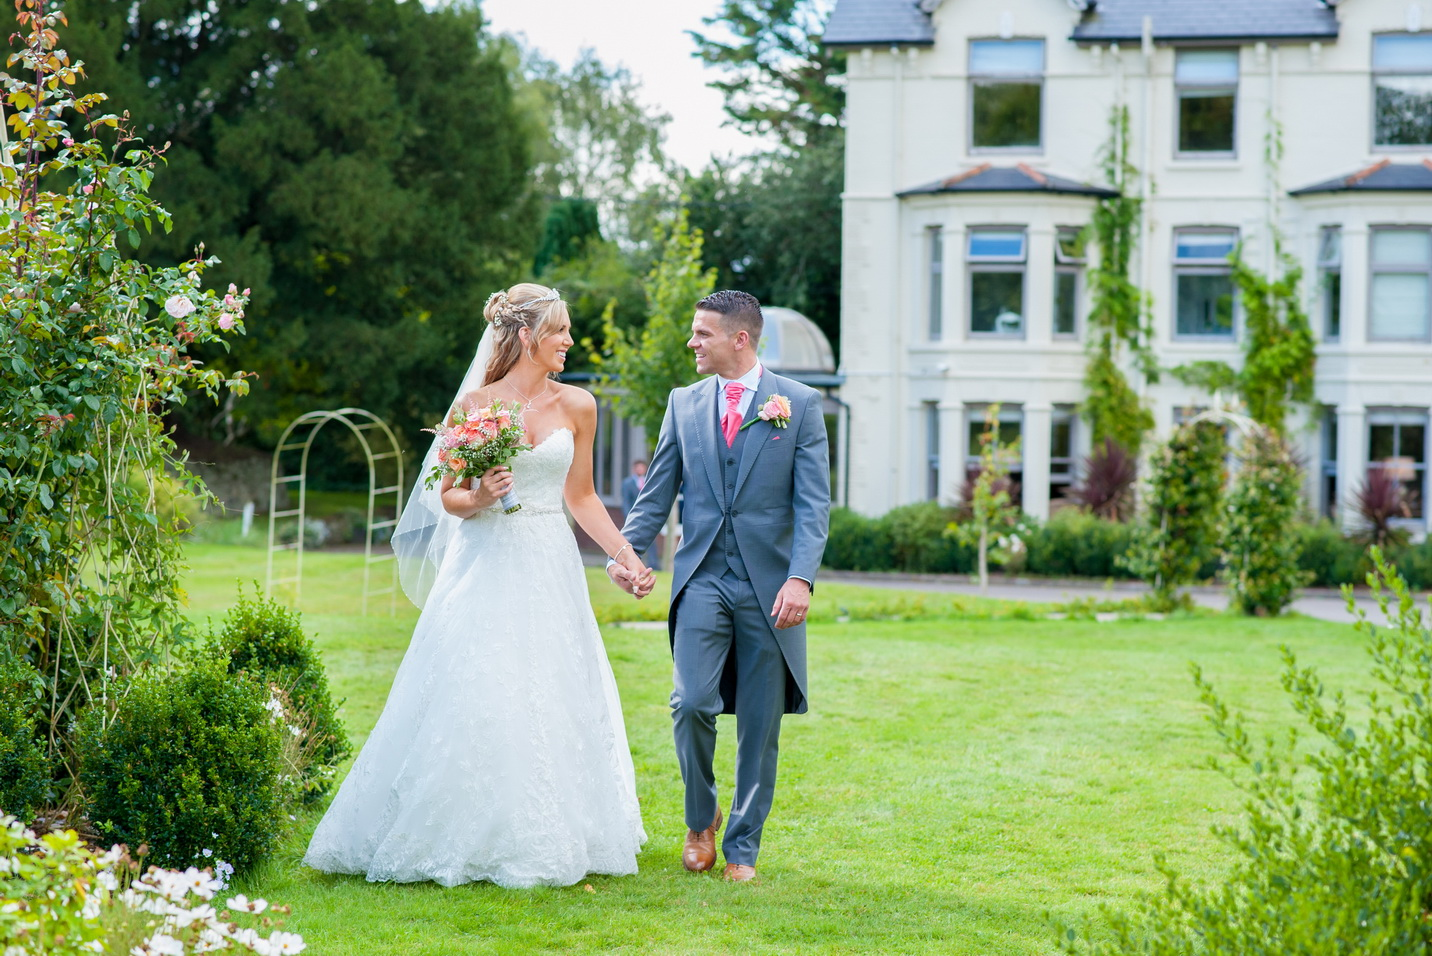 Sussex wedding venue with hotel rooms Southdowns Manor